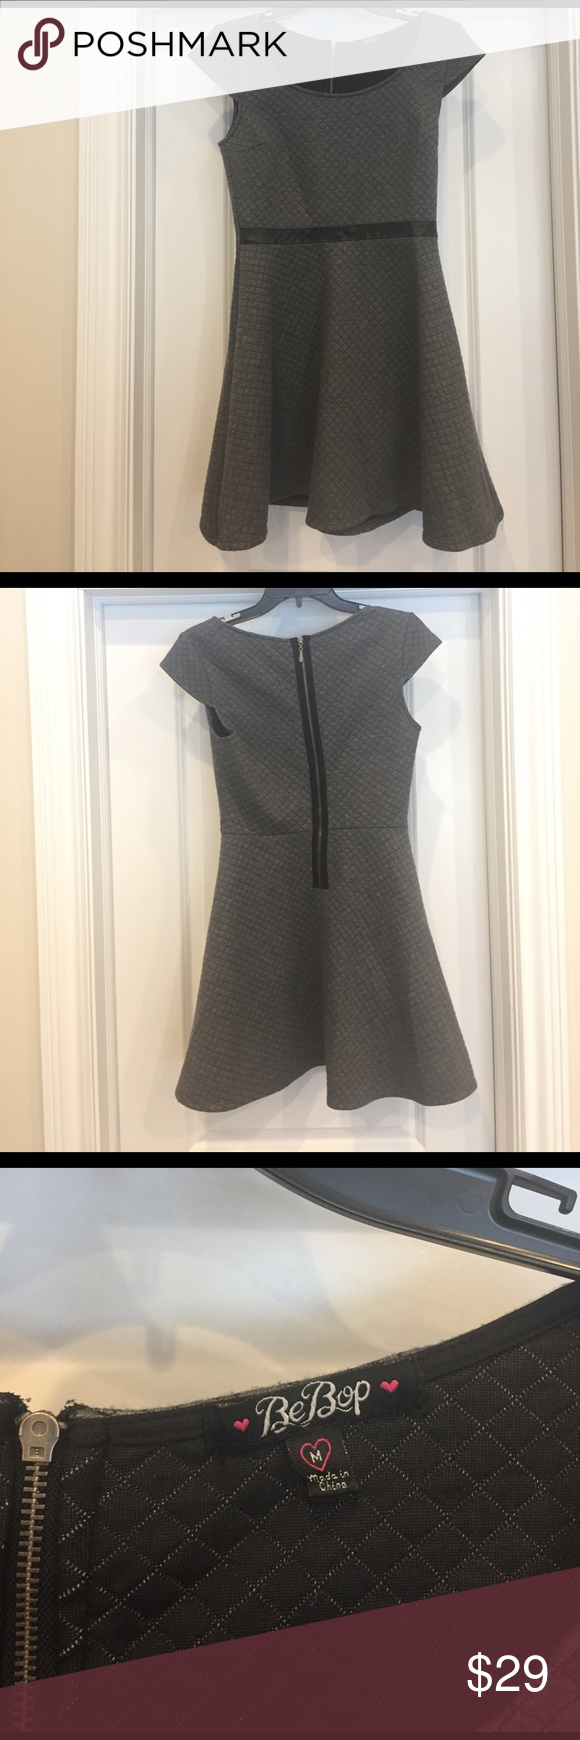 Grey Quilted Dress w/ Leather Belt/Band BeBop Sz M Excellent Condition, Girls Size Medium (12/14) Grey Dress with Black Leather Band/Belt half way around the waist. Very Pretty. Bebop Dresses Formal